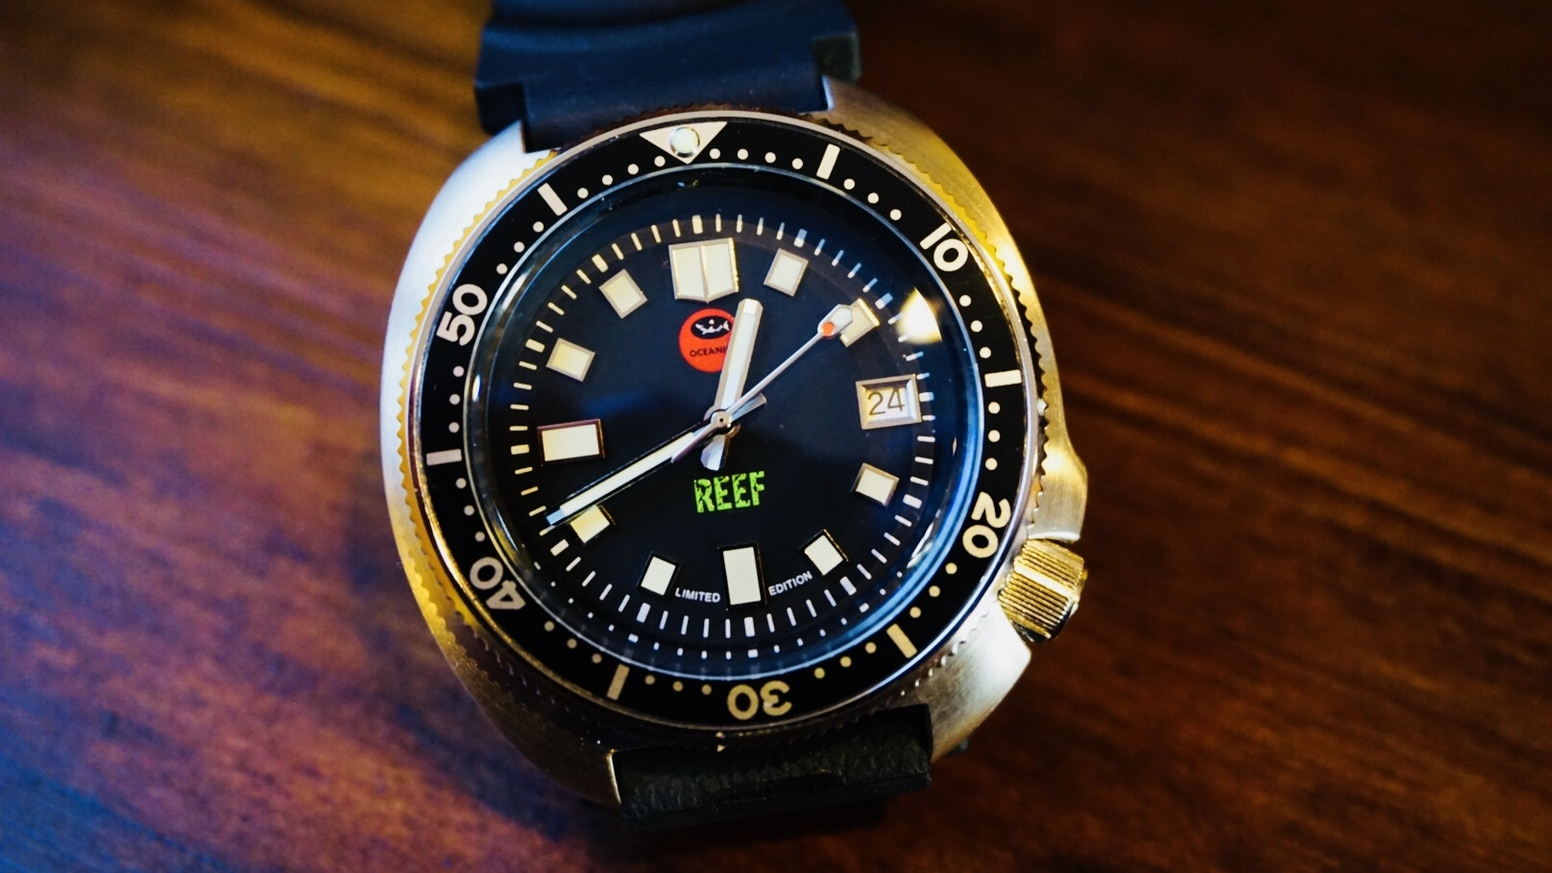 A Great Everyday Tool Dive Watch